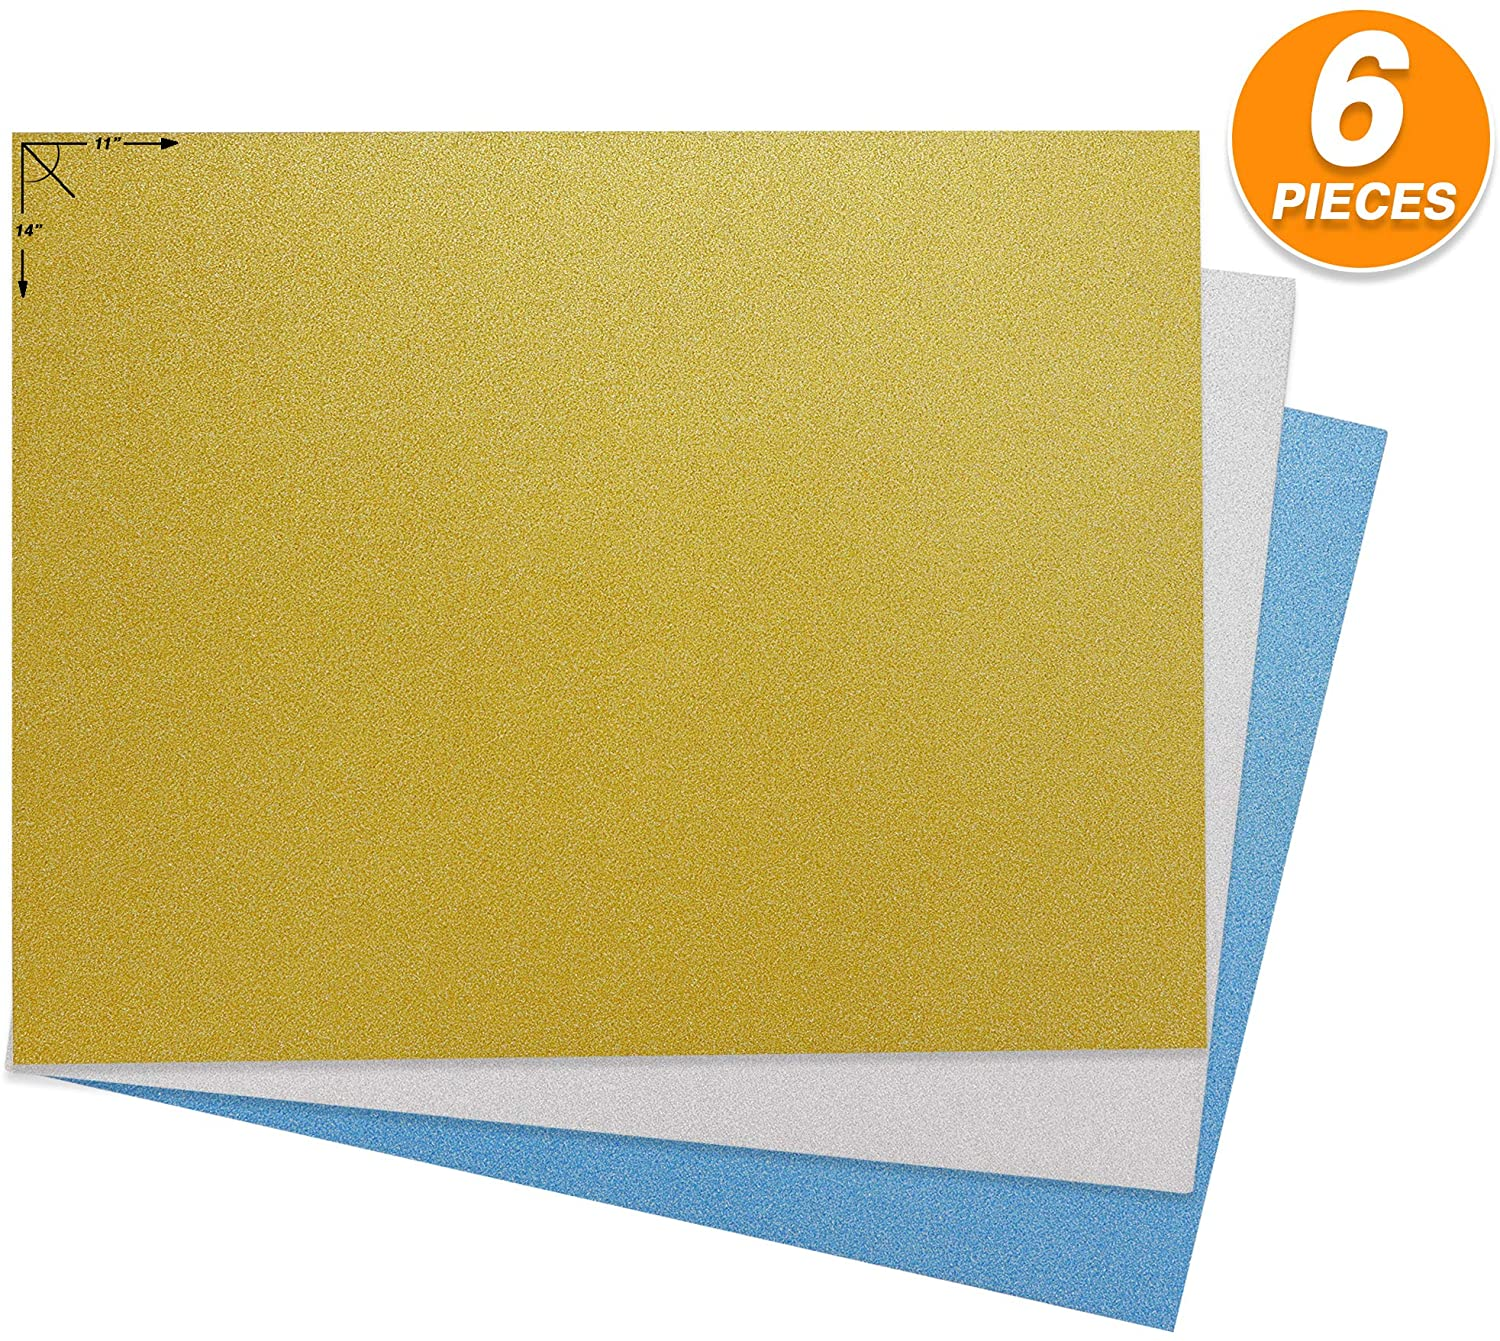 Emraw Poster Board Sturdy Office Glitter Blanks Sheets Sign Scrapbooking Blank Graphic Display Board Durable for Arts and Crafts Projects Blank Board 3 per Pack (Pack of 2)